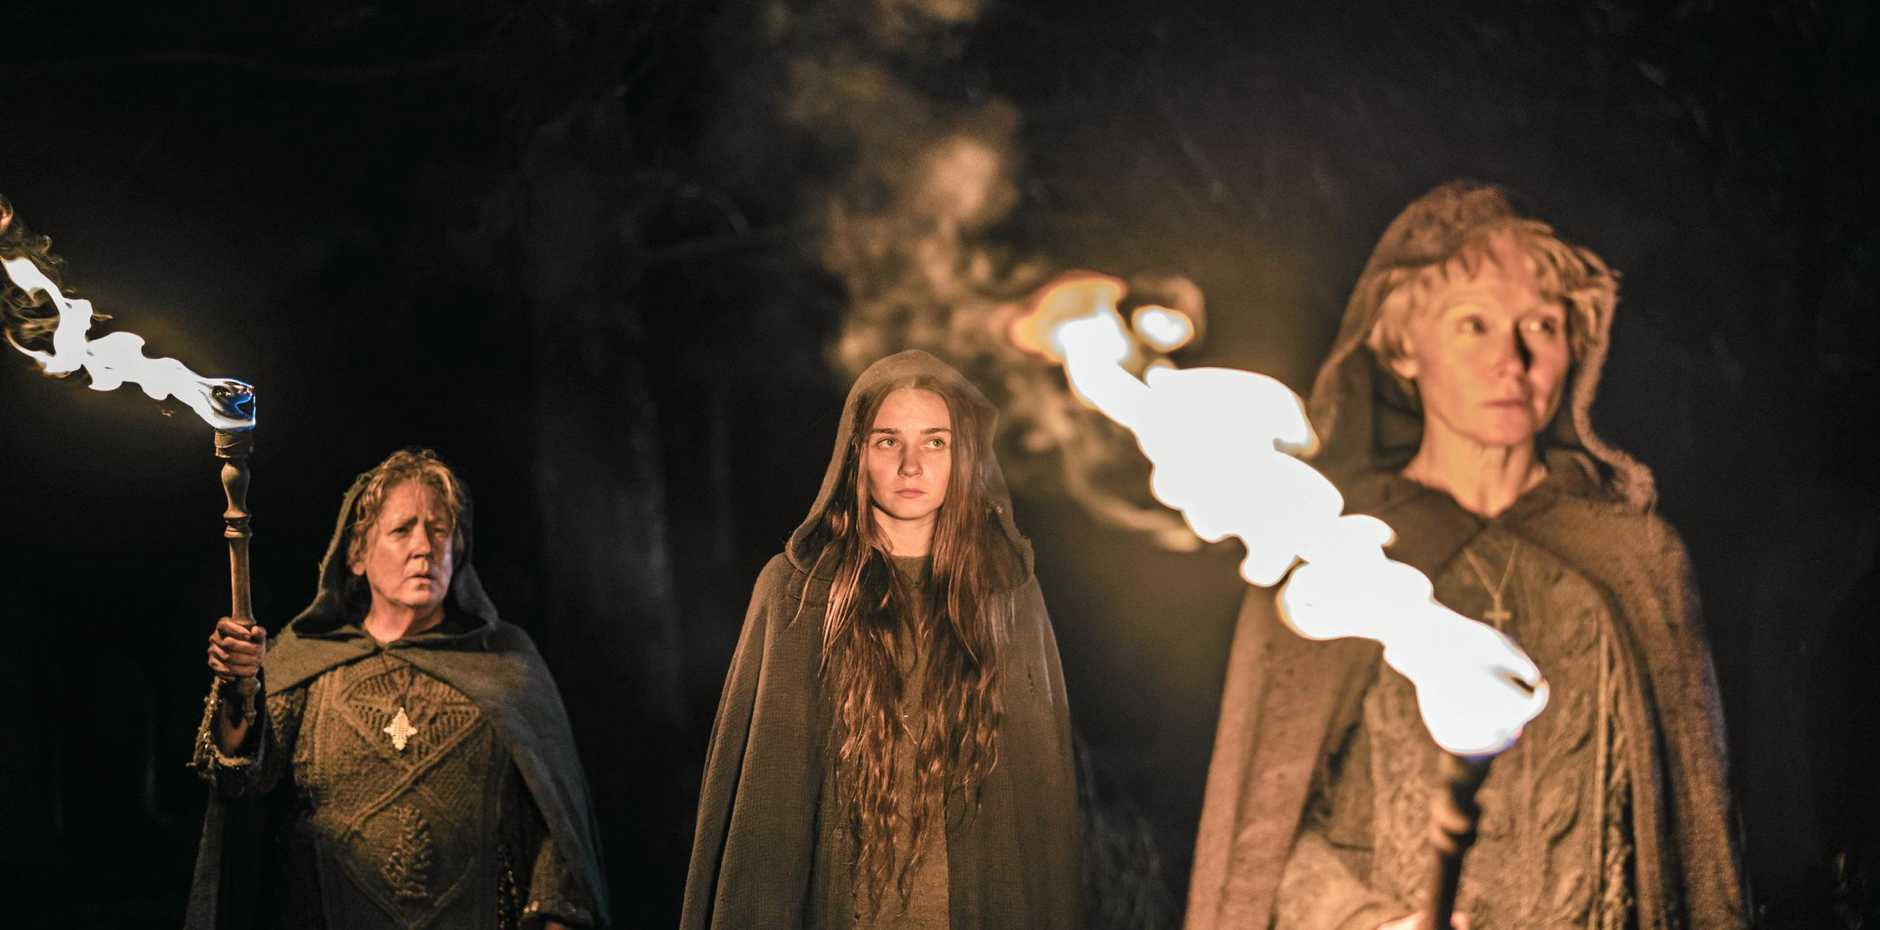 Ann Dowd, Jessica Barden and Essie Davis in a scene from the TV series Lambs of God. Supplied by Foxtel.